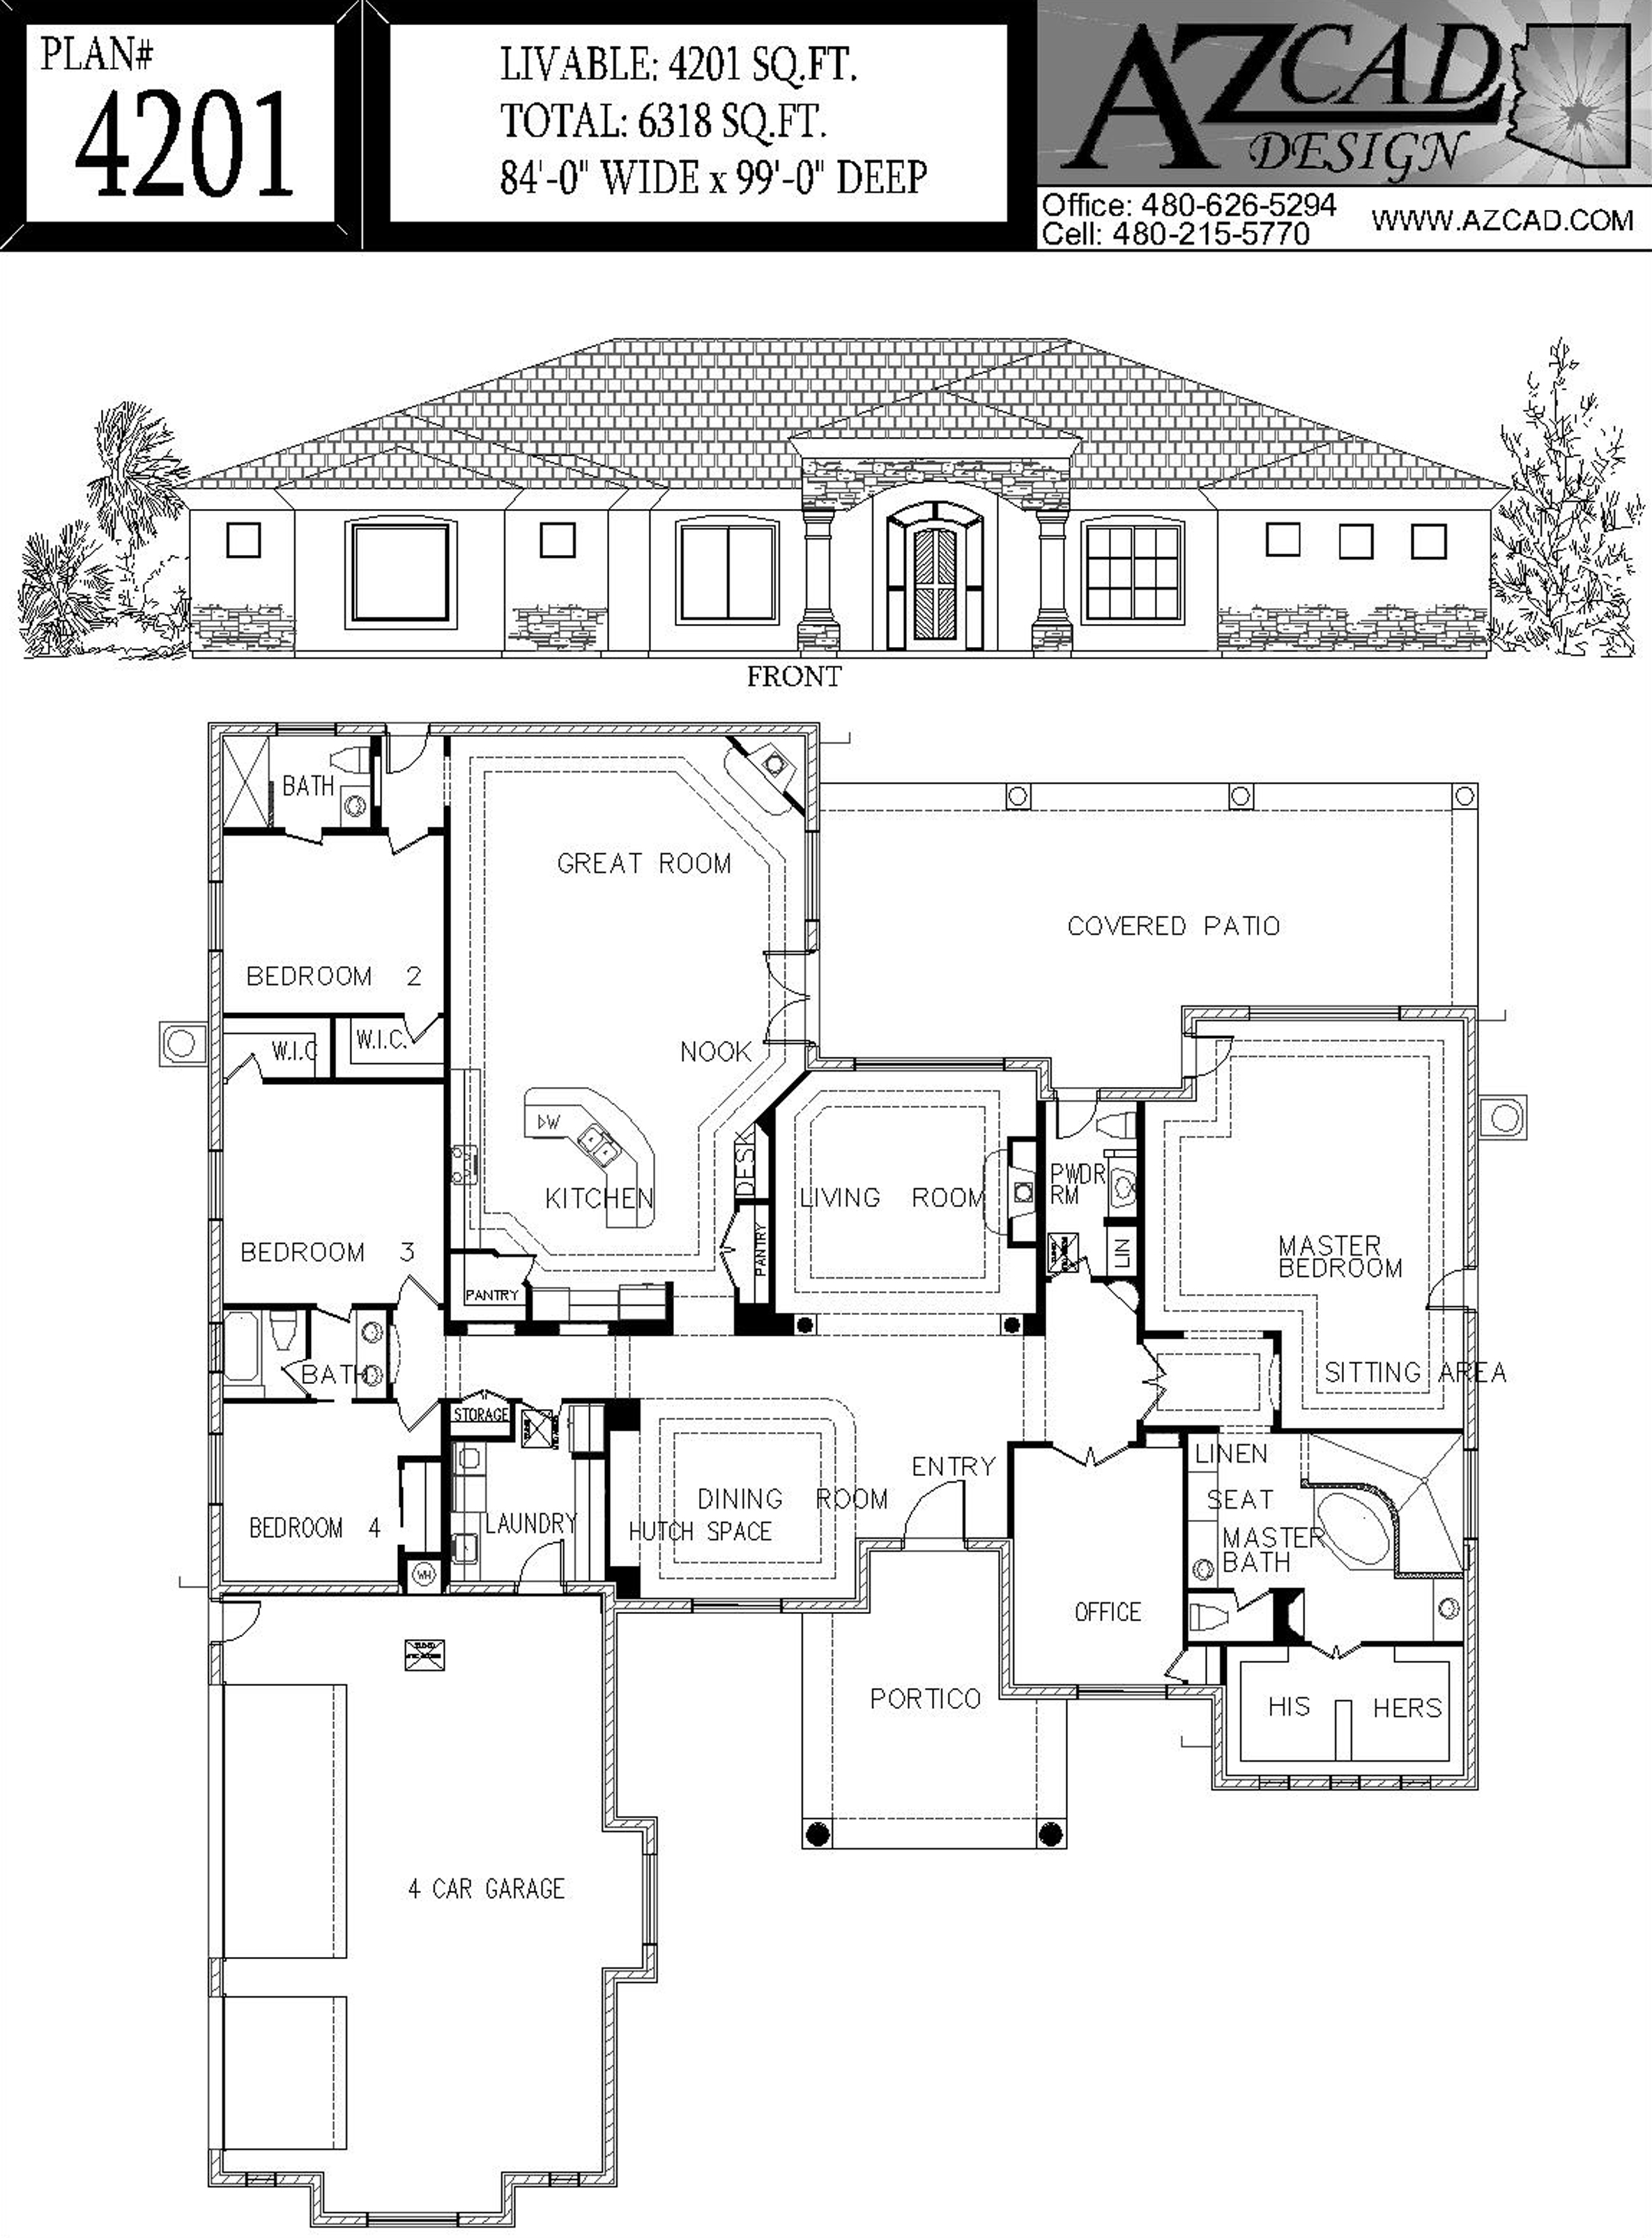 Tucson house plans 28 images appealing tucson house for Tucson home builders floor plans